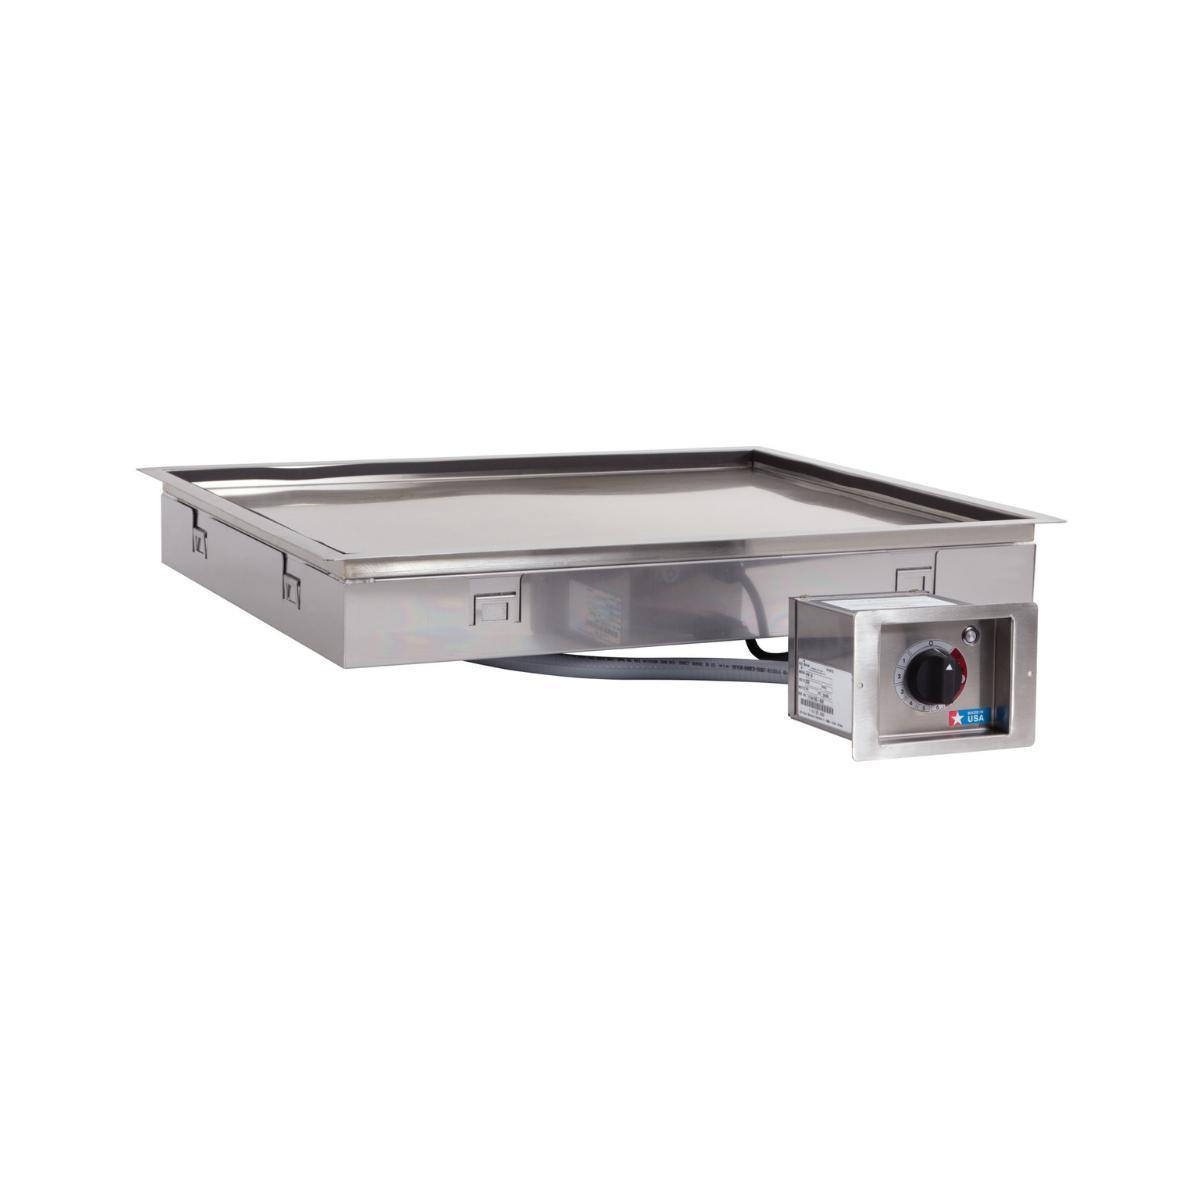 Alto-Shaam HFM-30 Drop In Hot Food Module / Carving Station - 30 inch